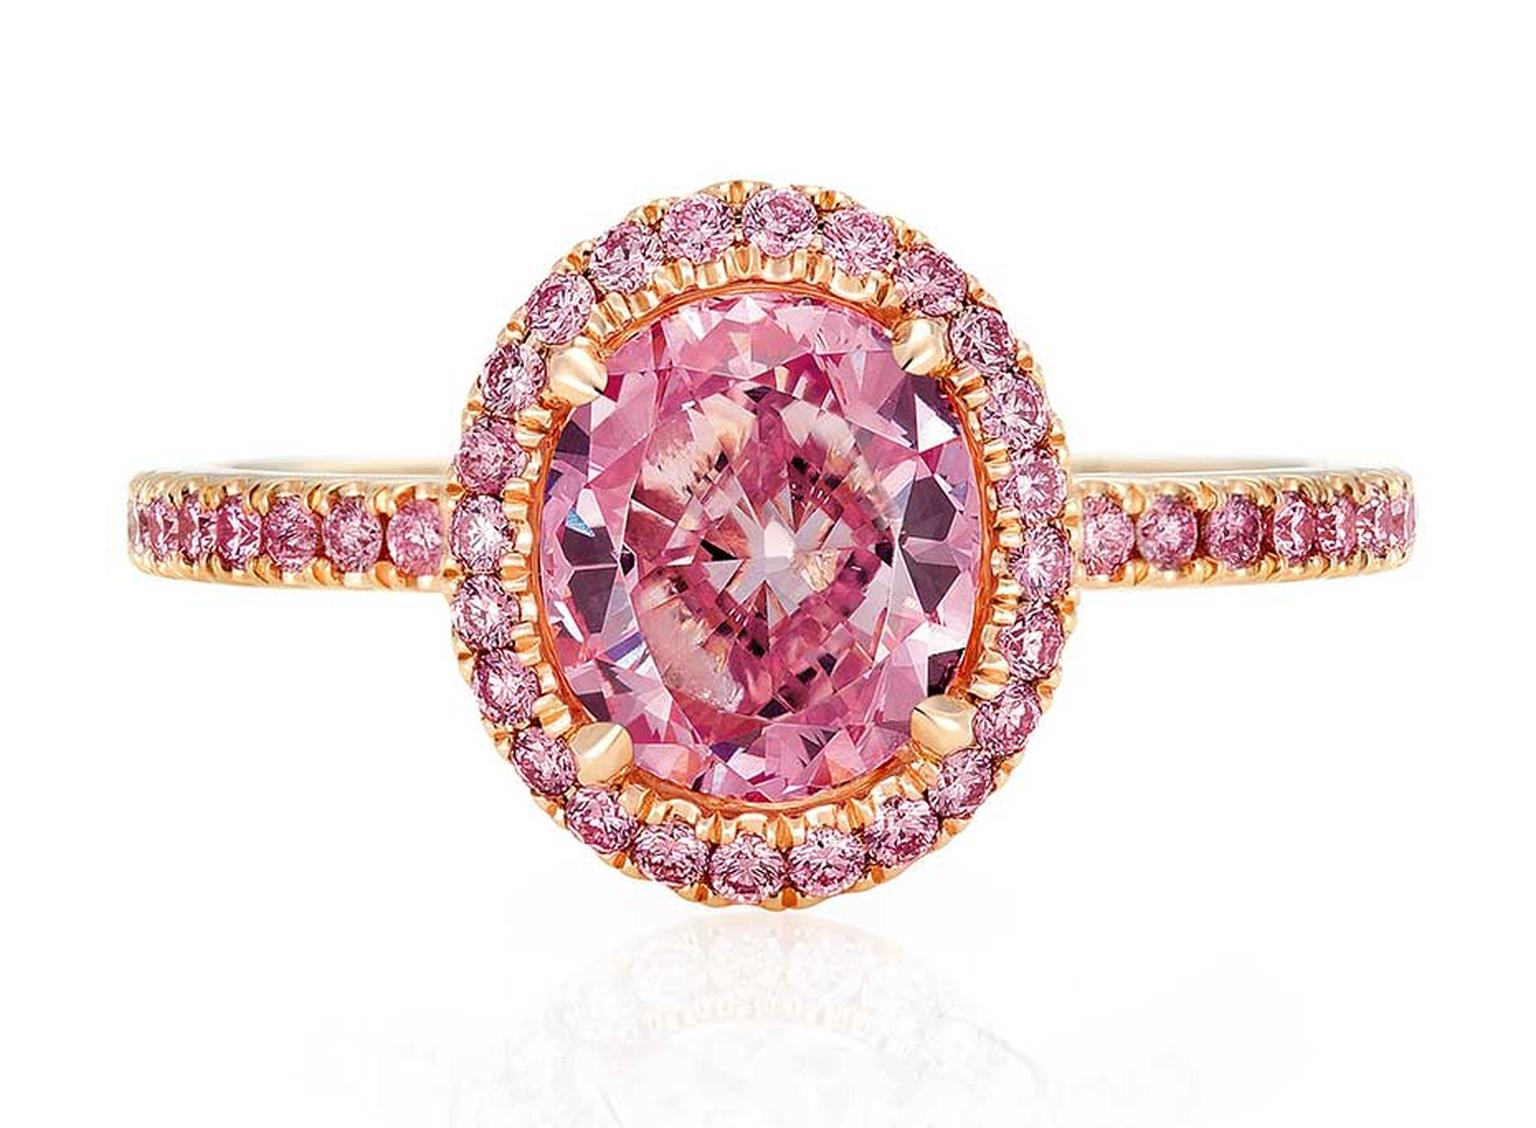 De Beers Aura pink diamond engagement ring in pink gold (£POA)